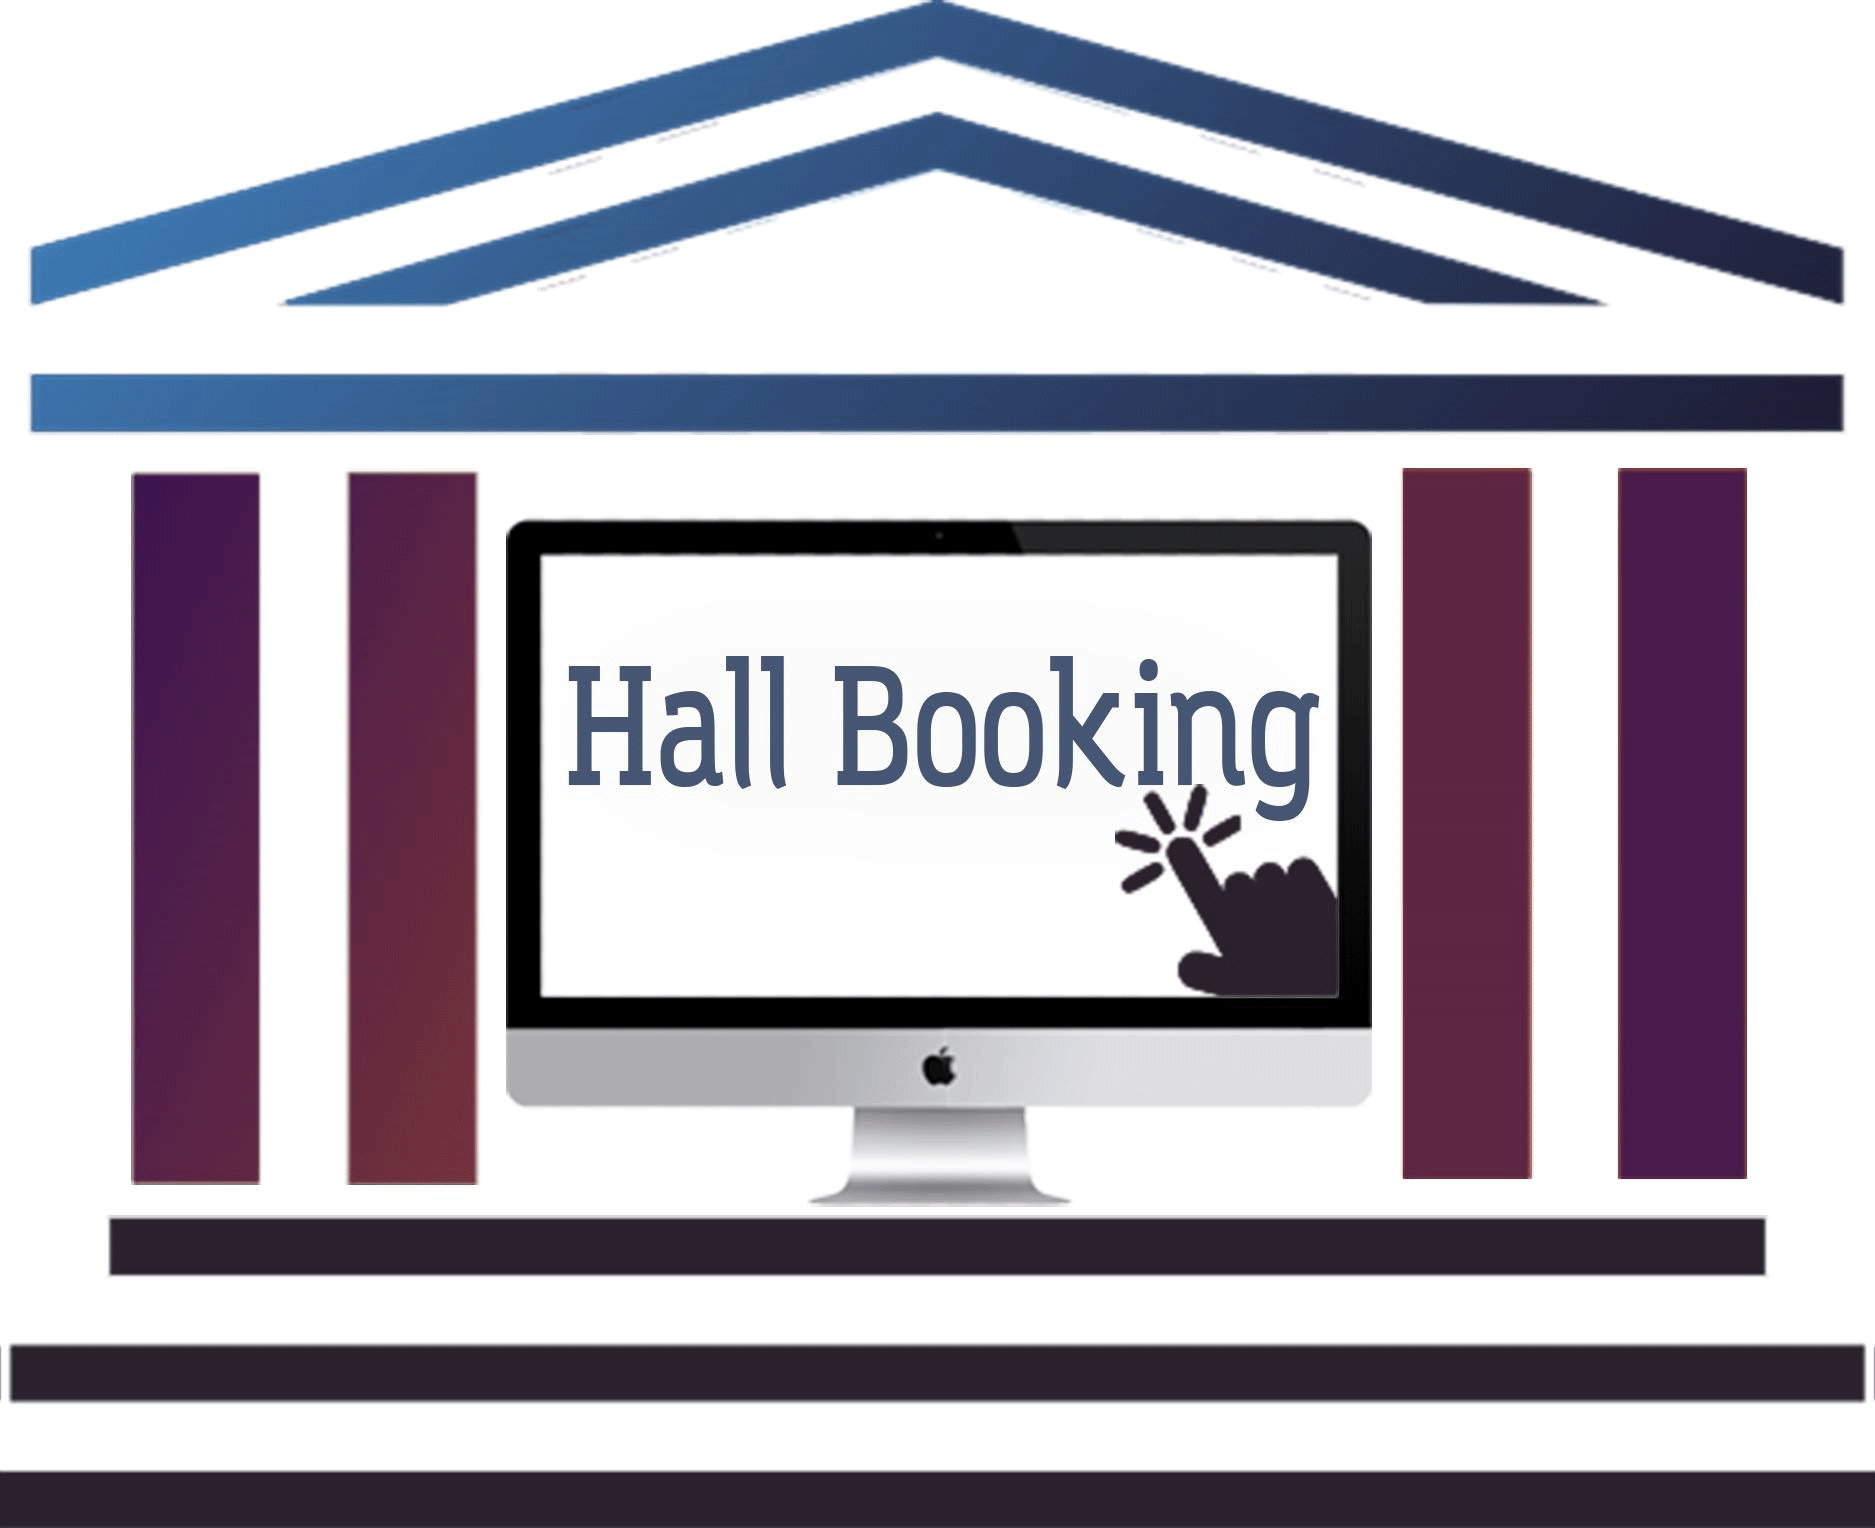 Hotel & Hall Booking